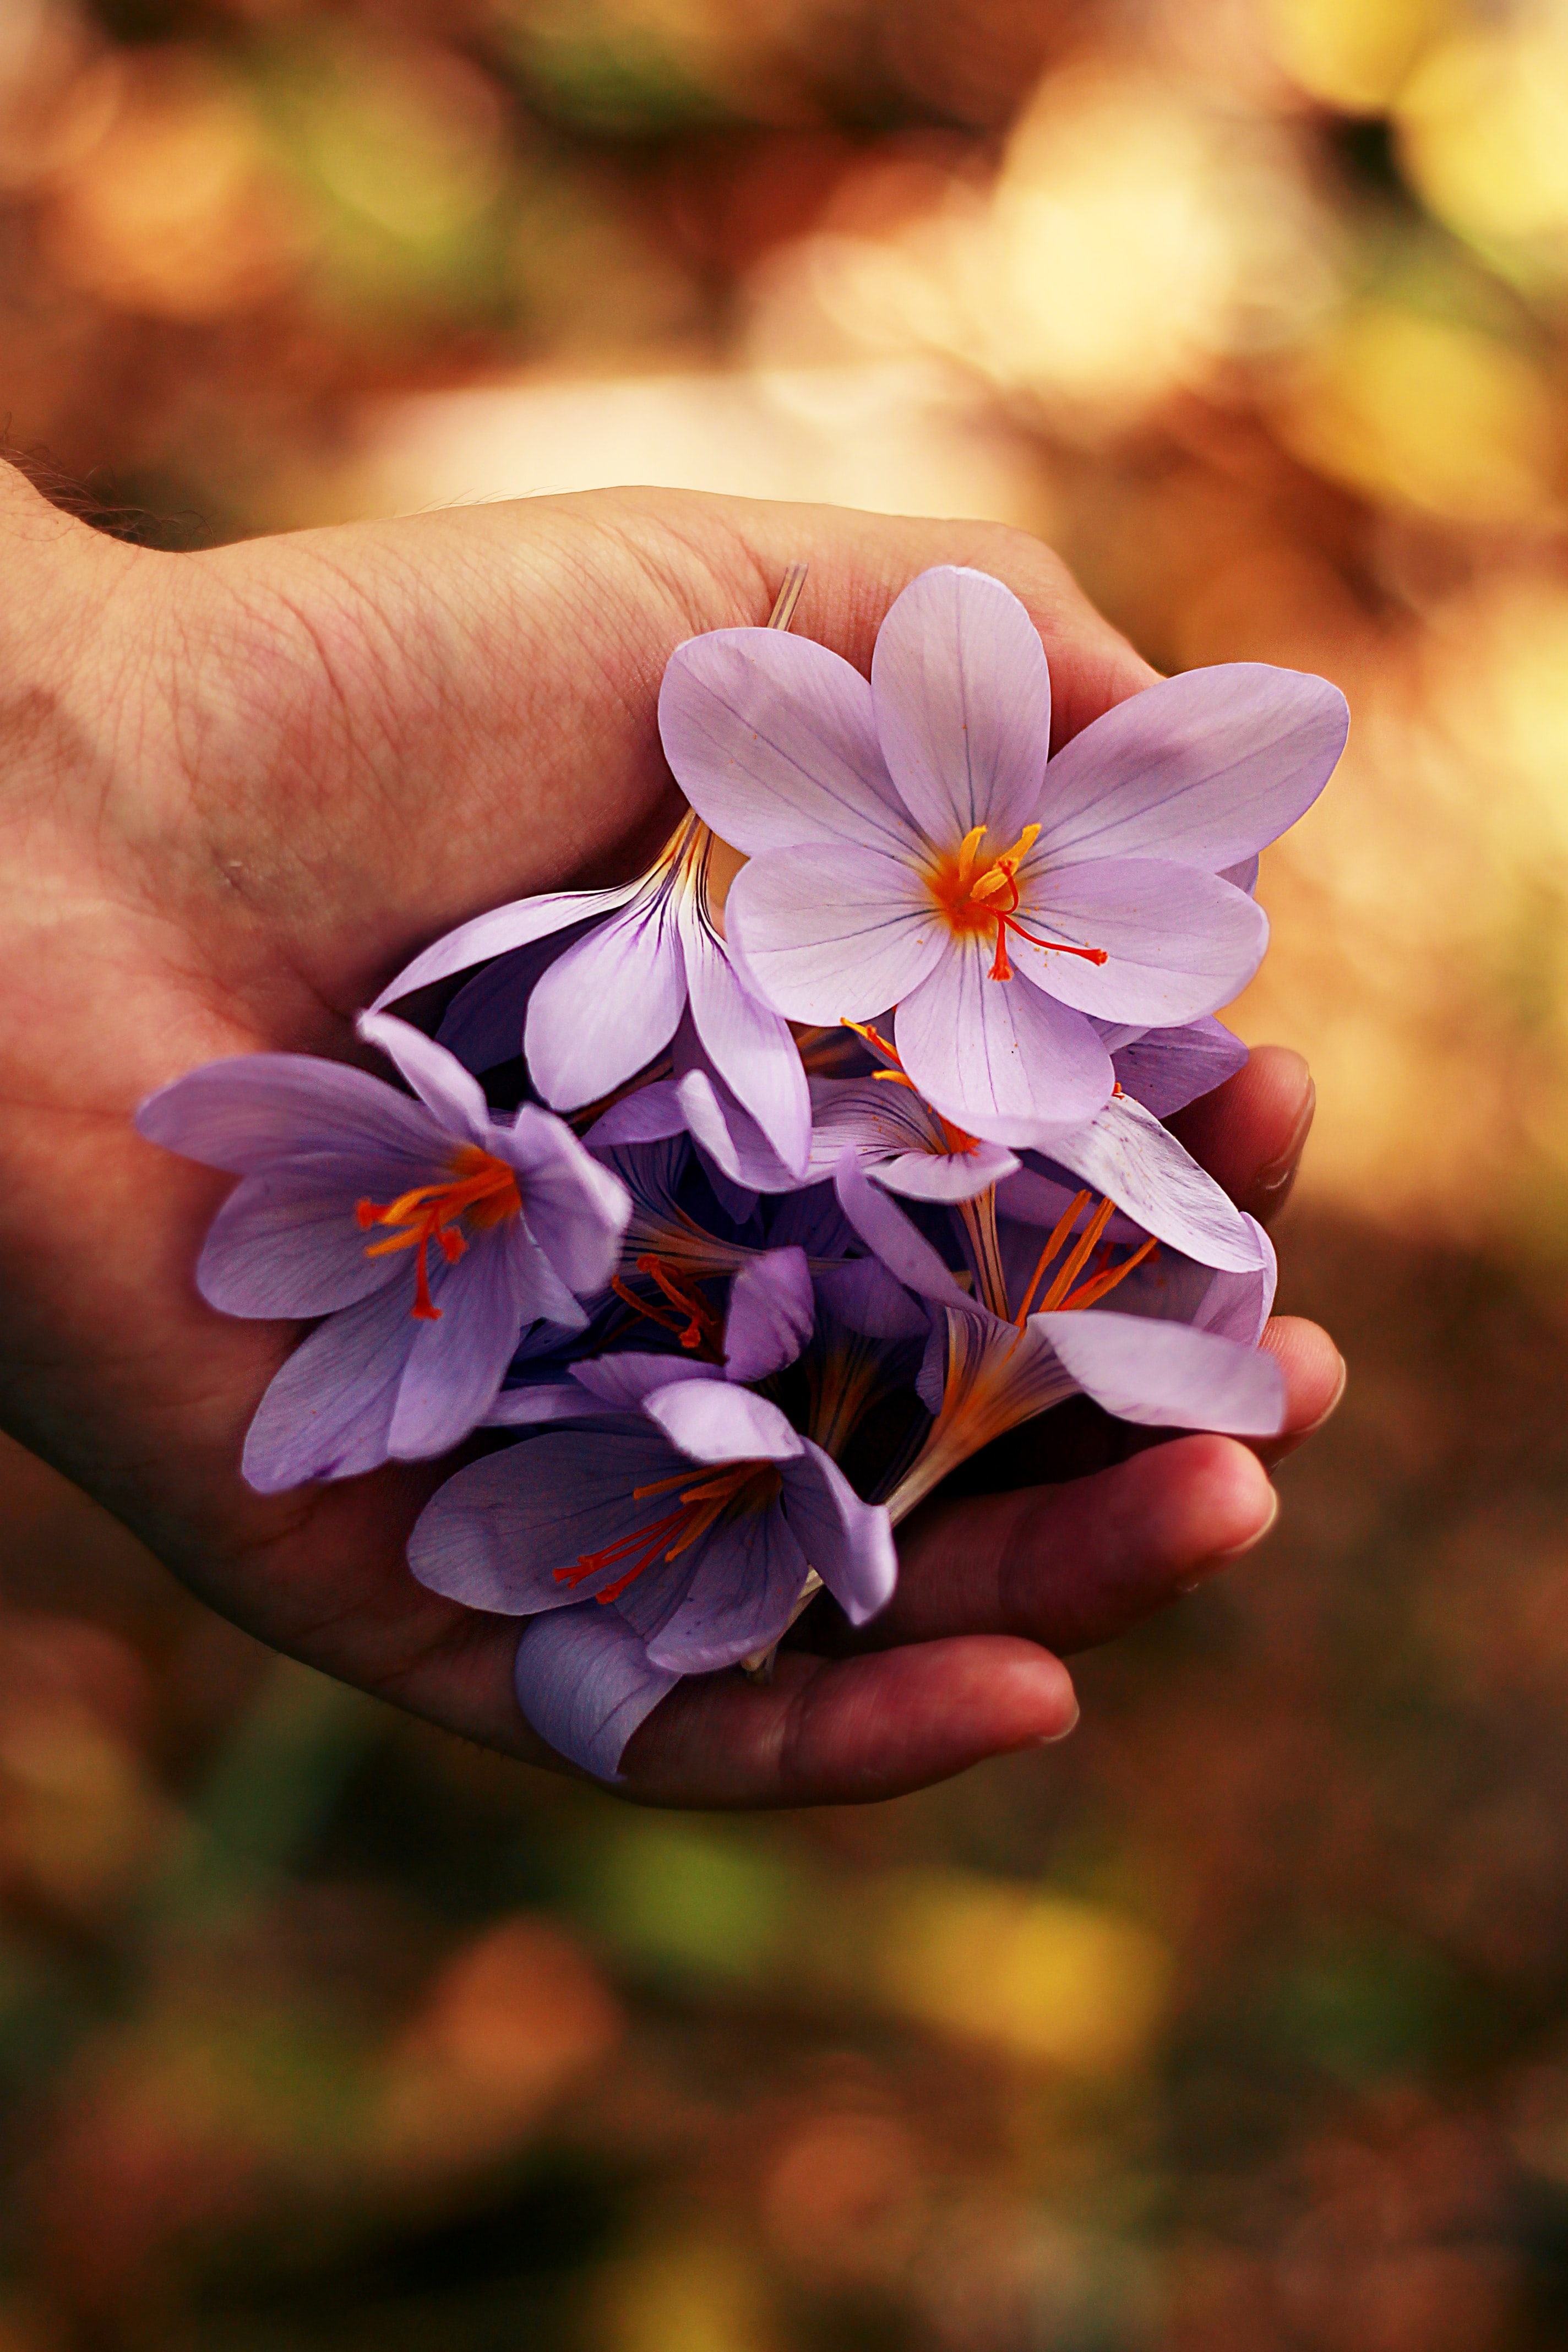 A person's hand holding a bunch of violet flowers